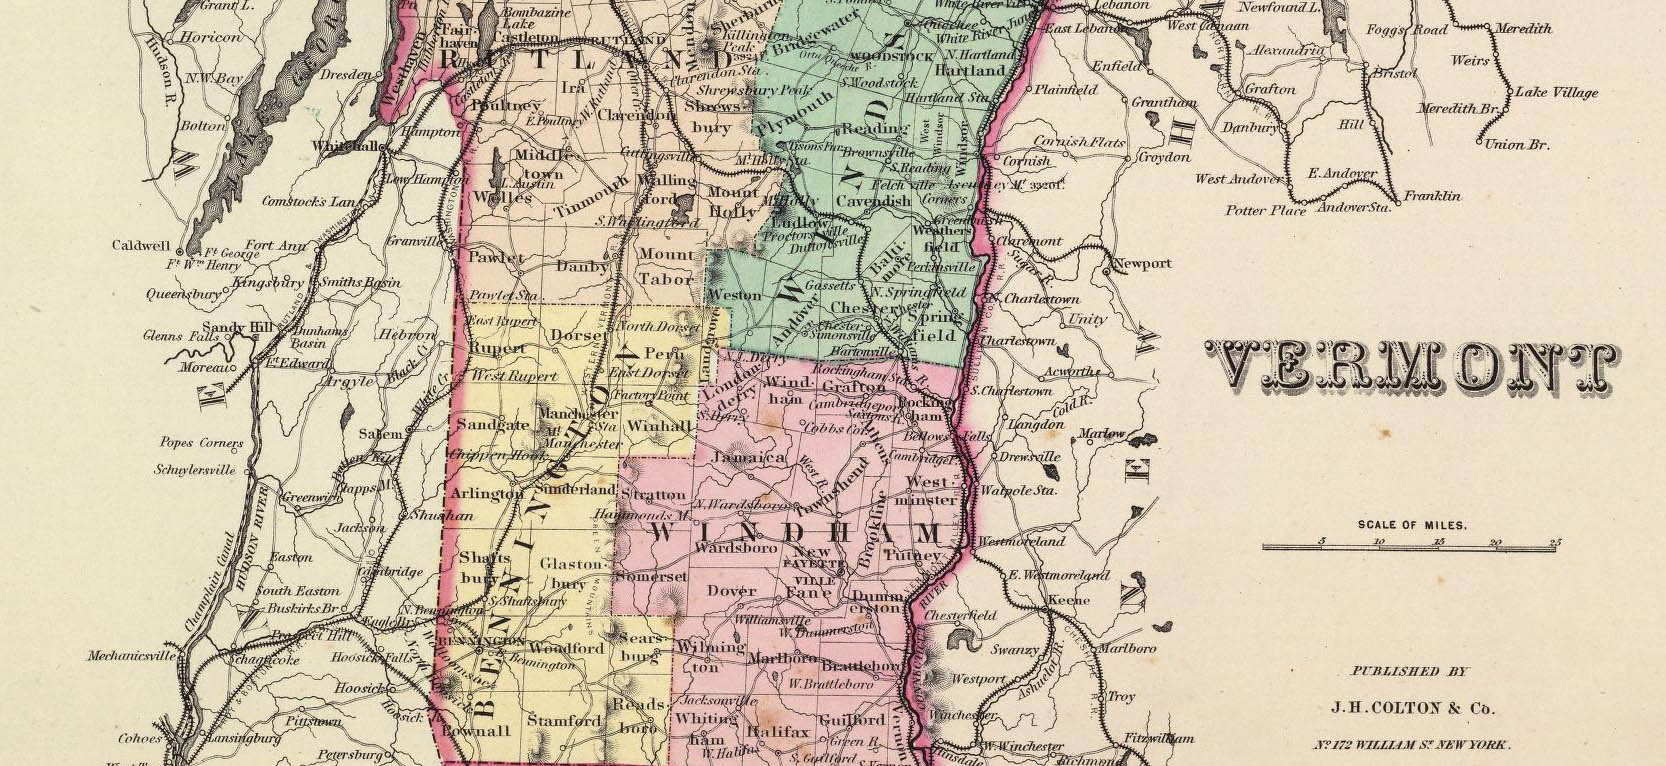 historical map of vermont